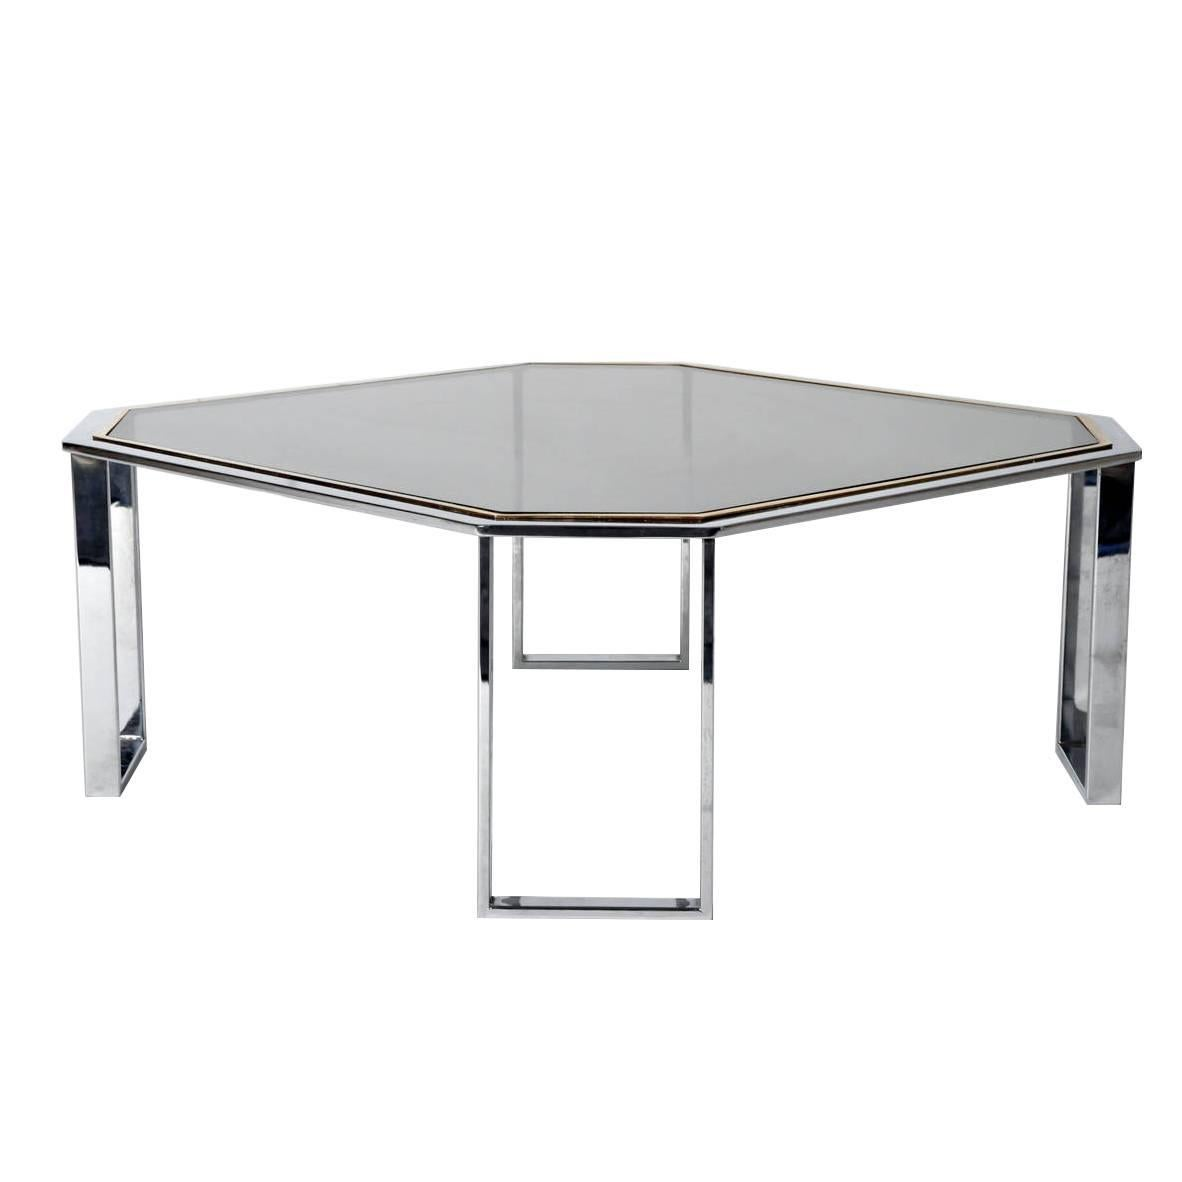 Two-Toned Octagonal Coffee Table